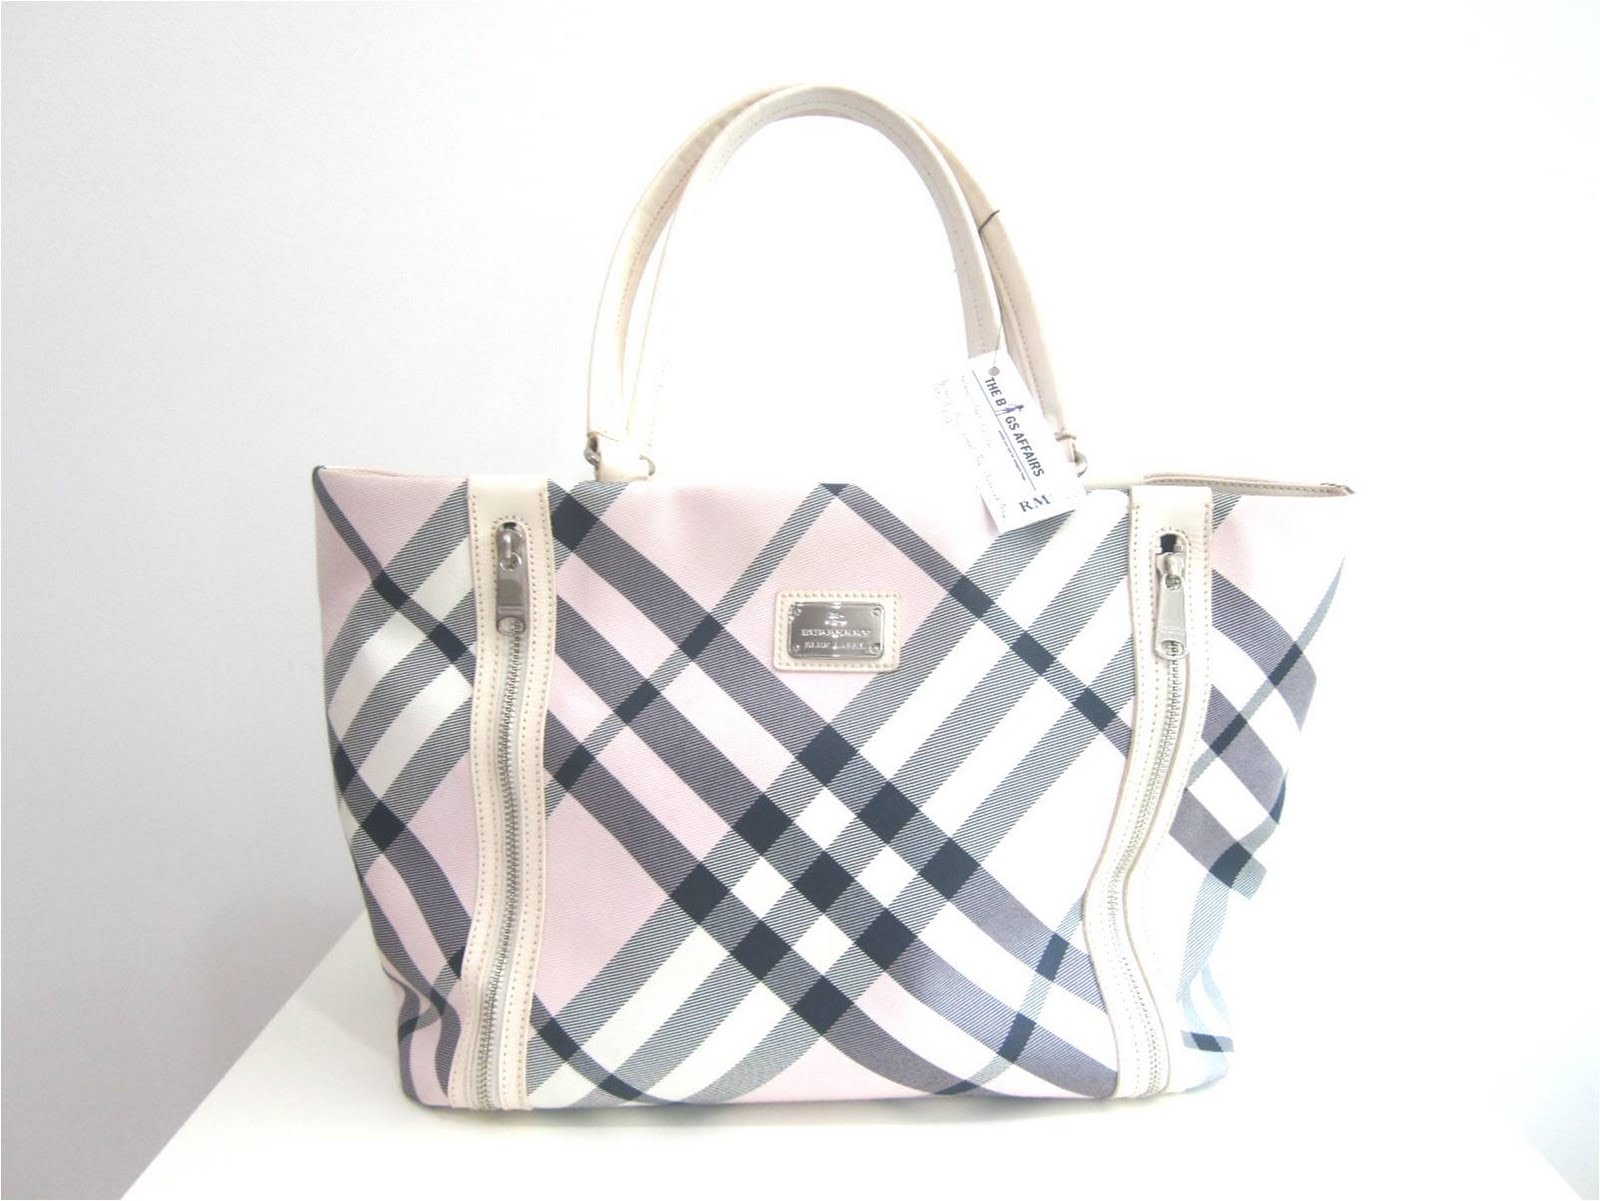 Burberry Blue Label Bag Japan8